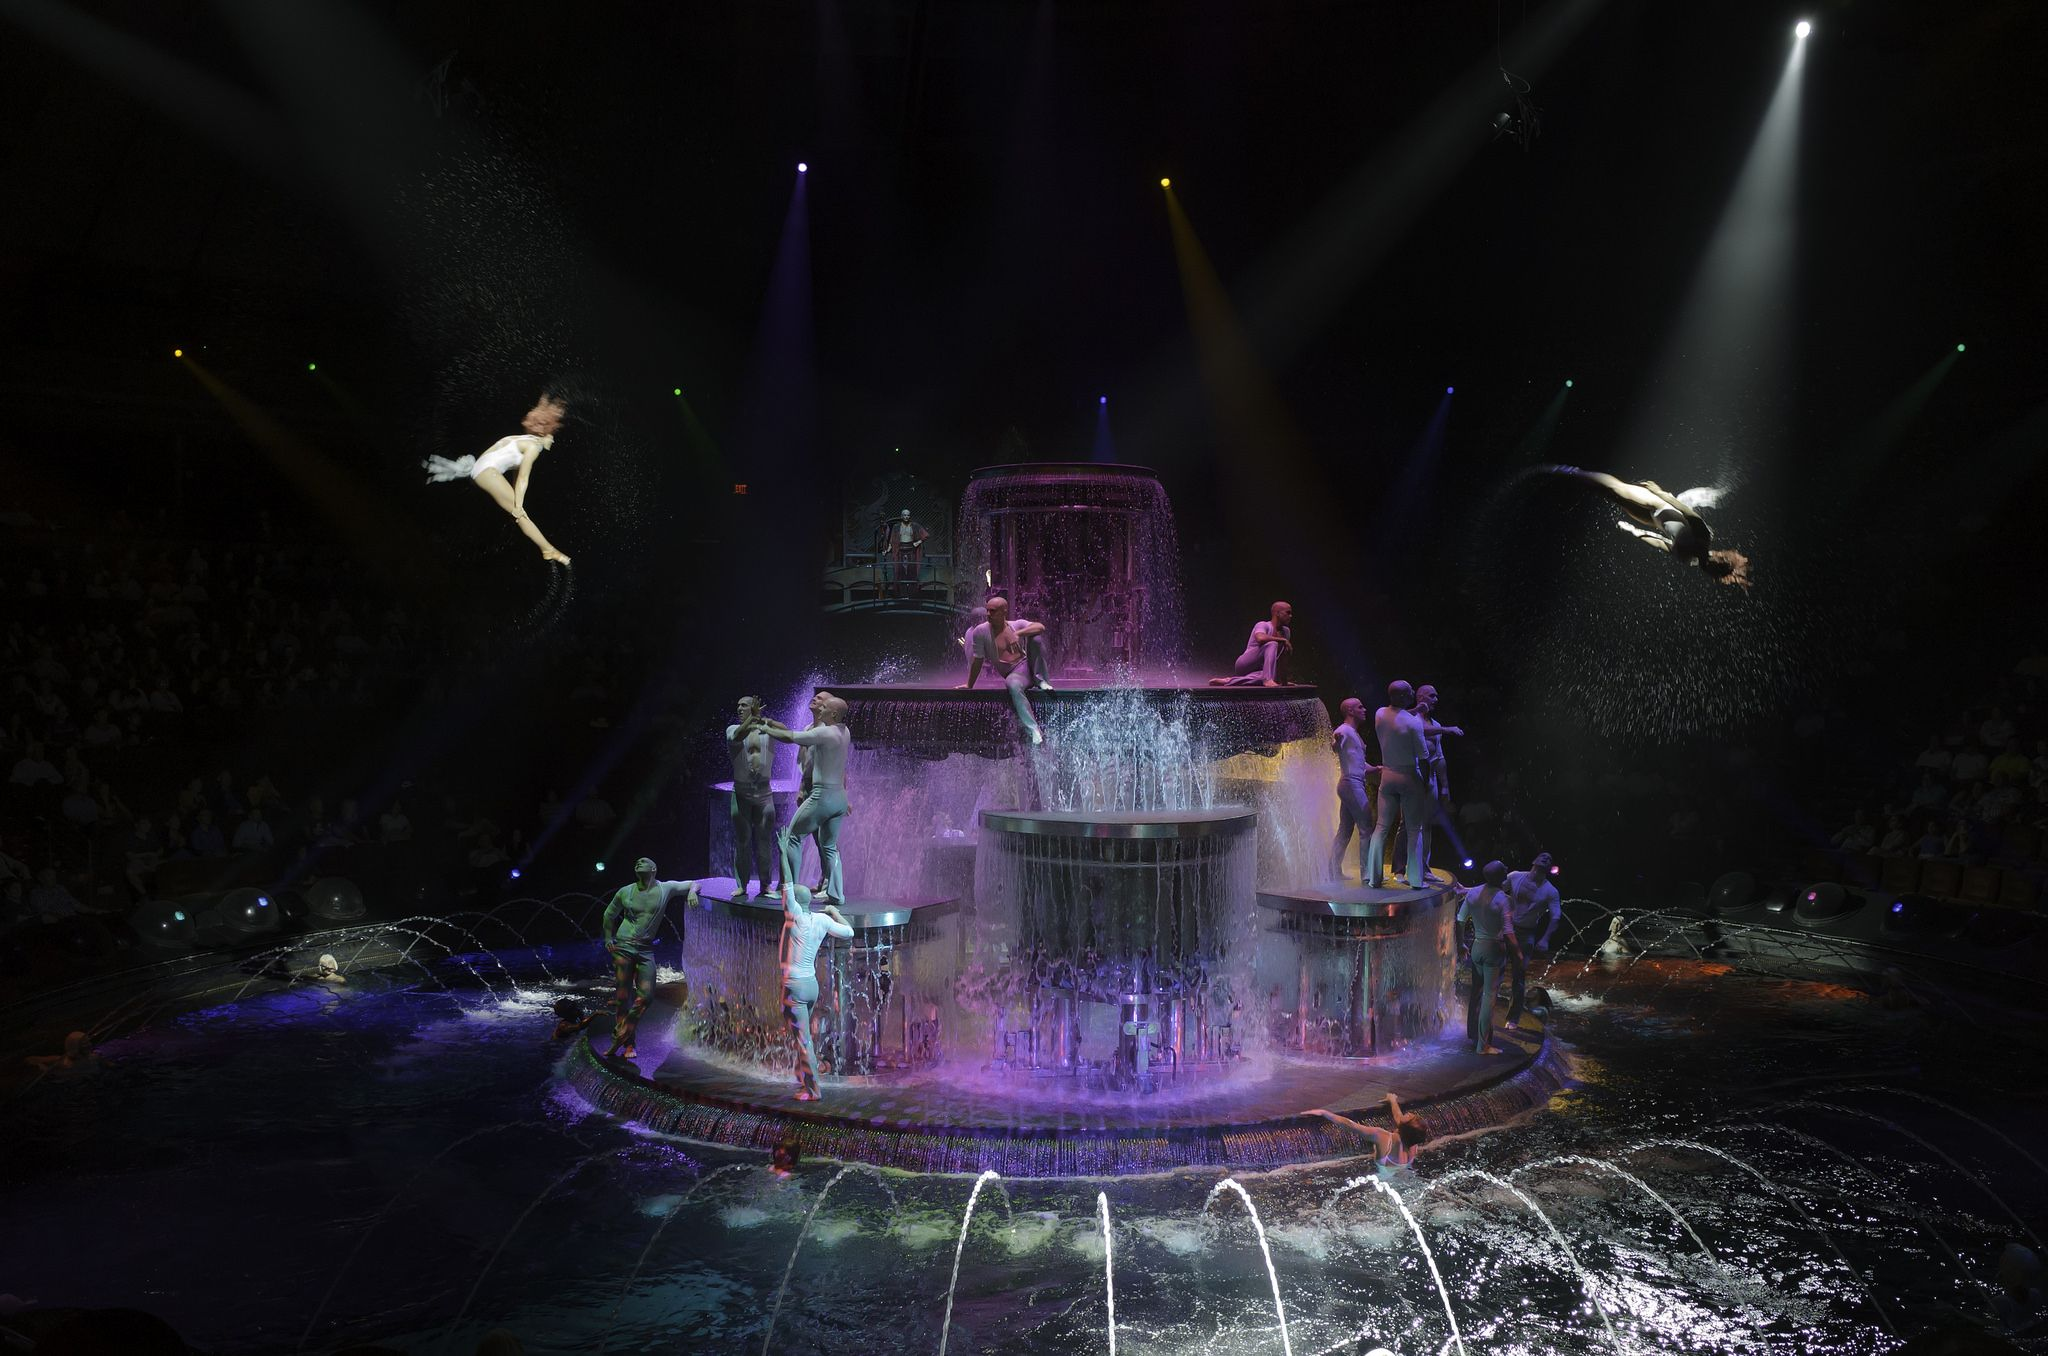 Le Reve during performance